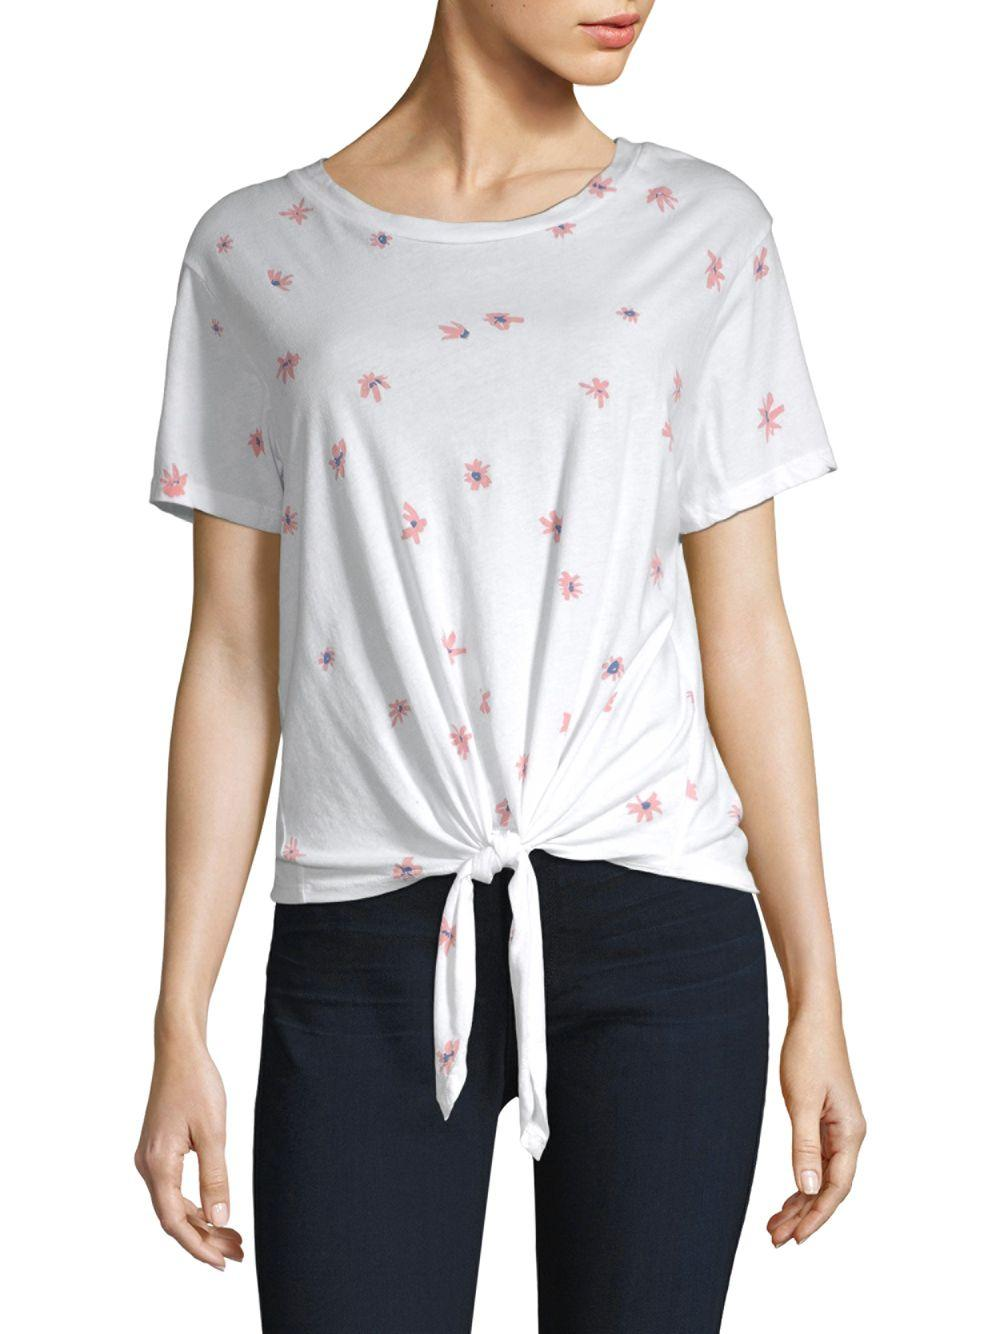 4e9bdd60ed8 Sundry Daisies Tie-front Tee in White - Save 5% - Lyst